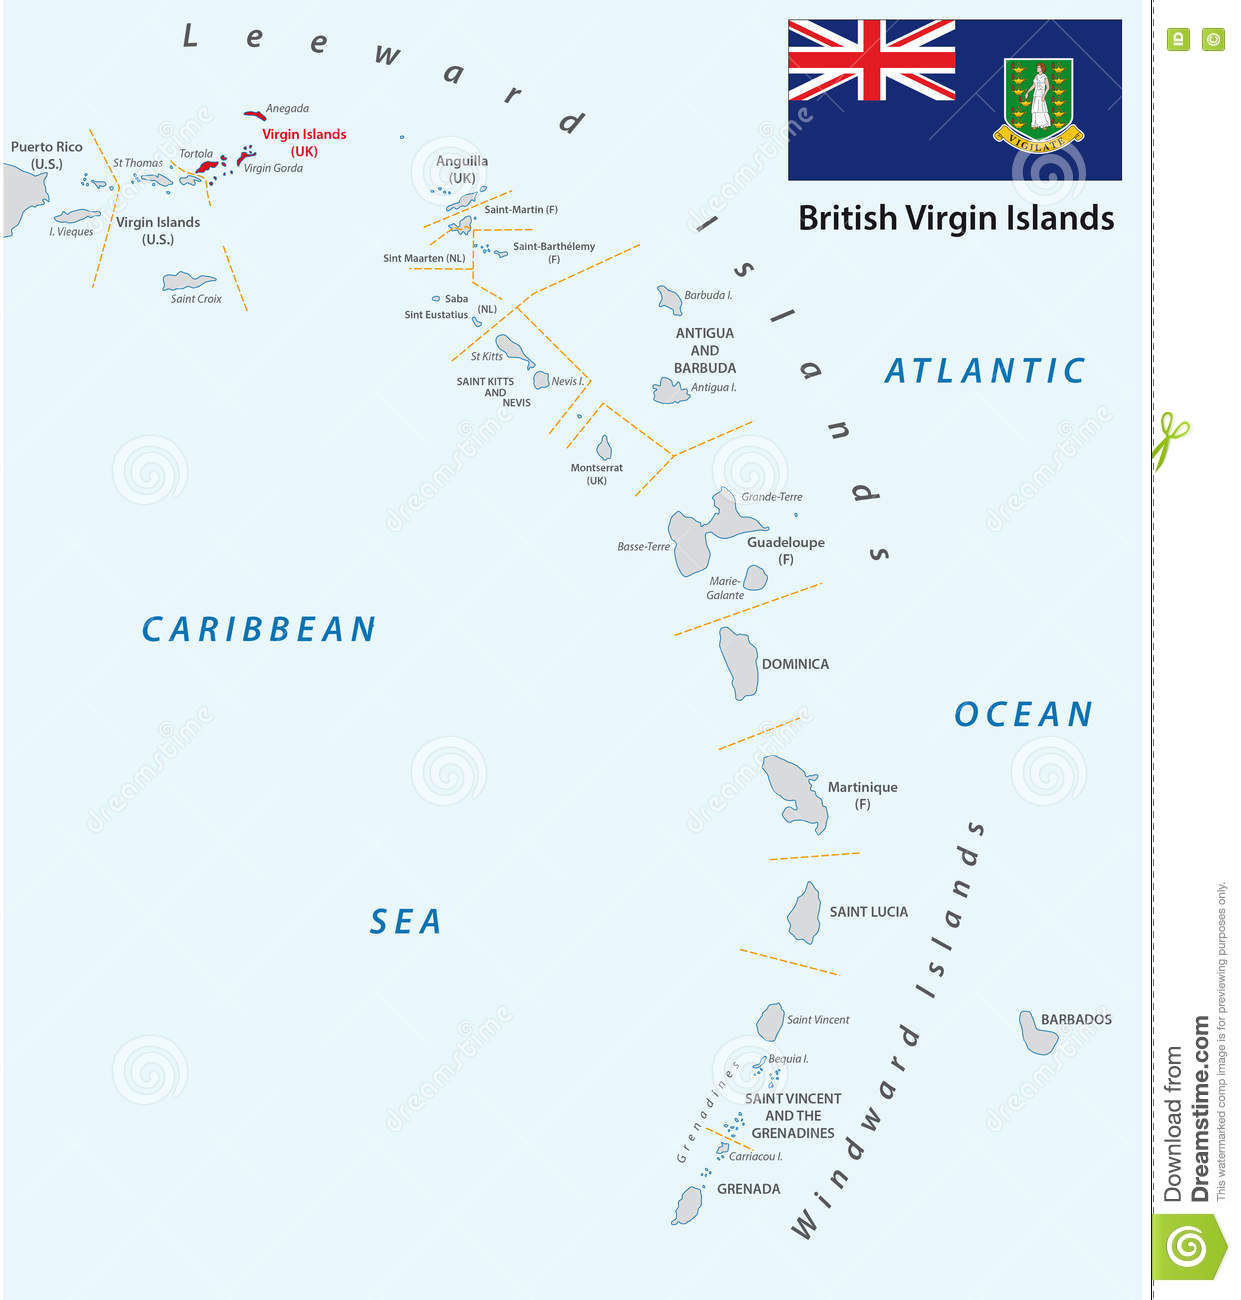 st croix map of island with Stock Photo Lesser Antilles Map British Virgin Islands Flag Outline Image77650309 on Christiansted additionally Boundary Waters Canoe Area Winter Adventure in addition Sandals further Maps besides Sitesincollection.